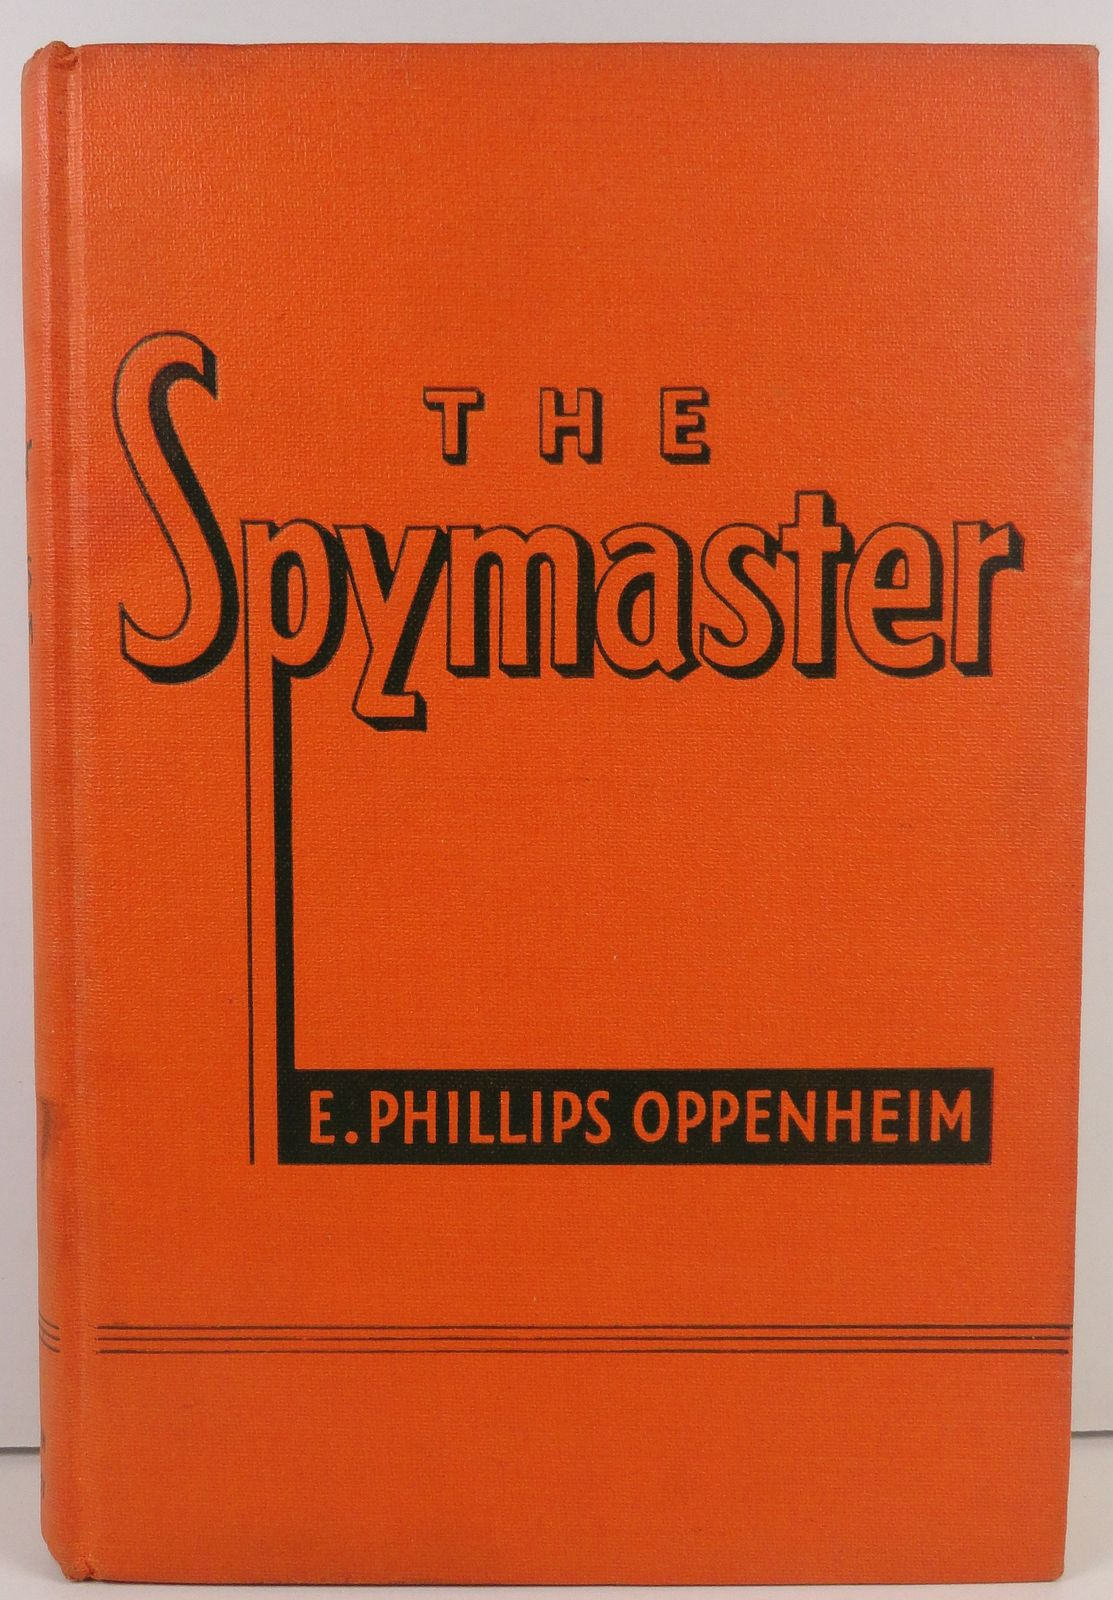 The Spymaster by E. Phillips Oppenheim 1938 Little, Brown